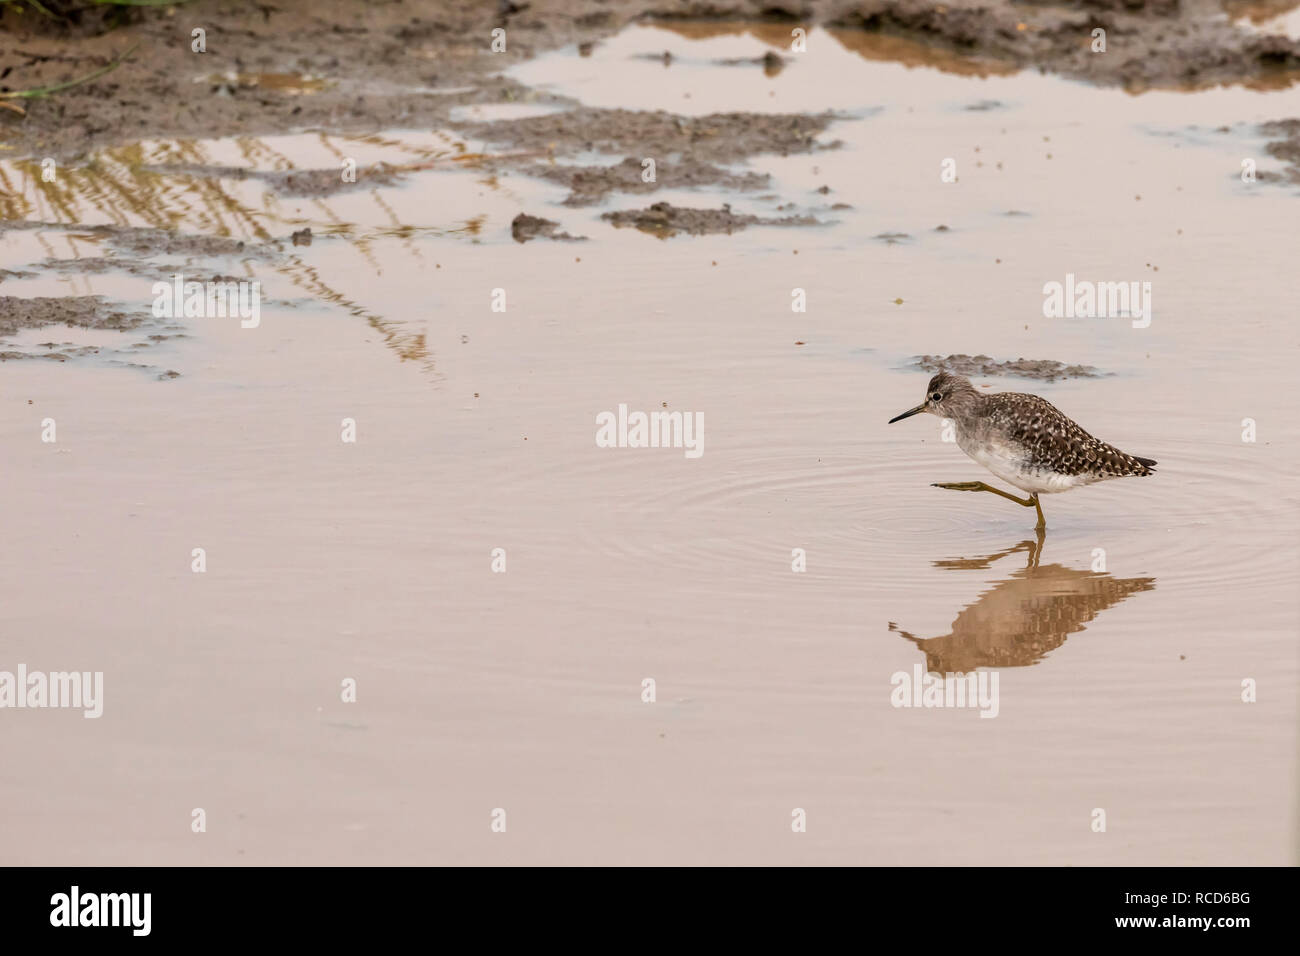 Wood Sandpiper (Tringa glareola) looking for food in Lake Manyara National Park, Tanzania - Stock Image